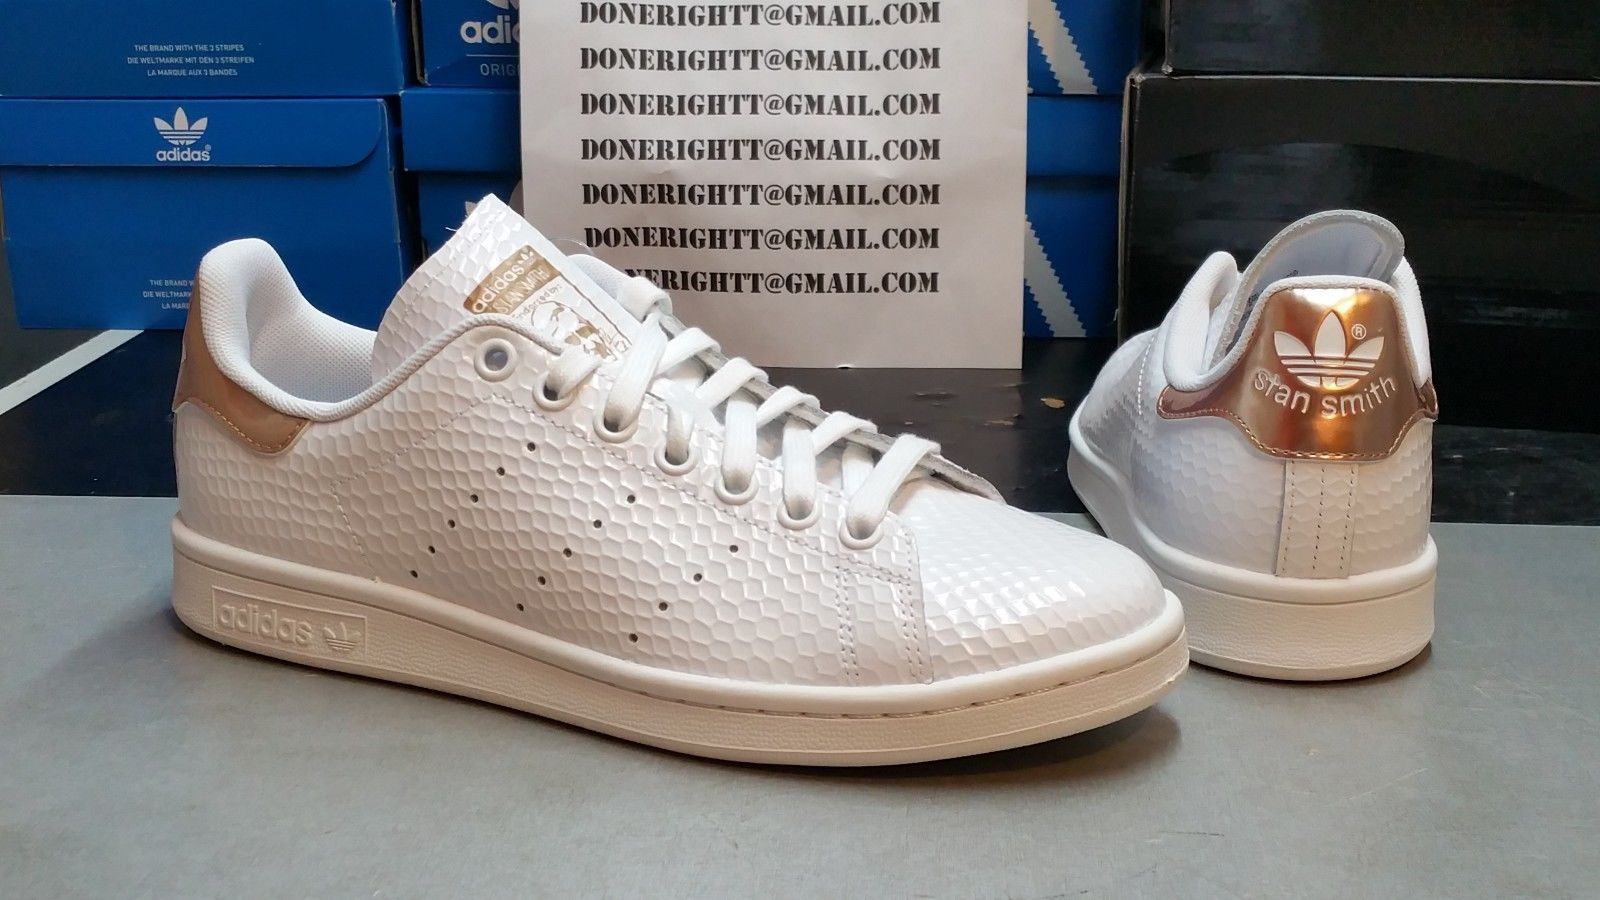 7f03891d511f Womens Adidas Stan Smith Copper White Kettle Snakeskin Metallic Rose Gold  Yeezy